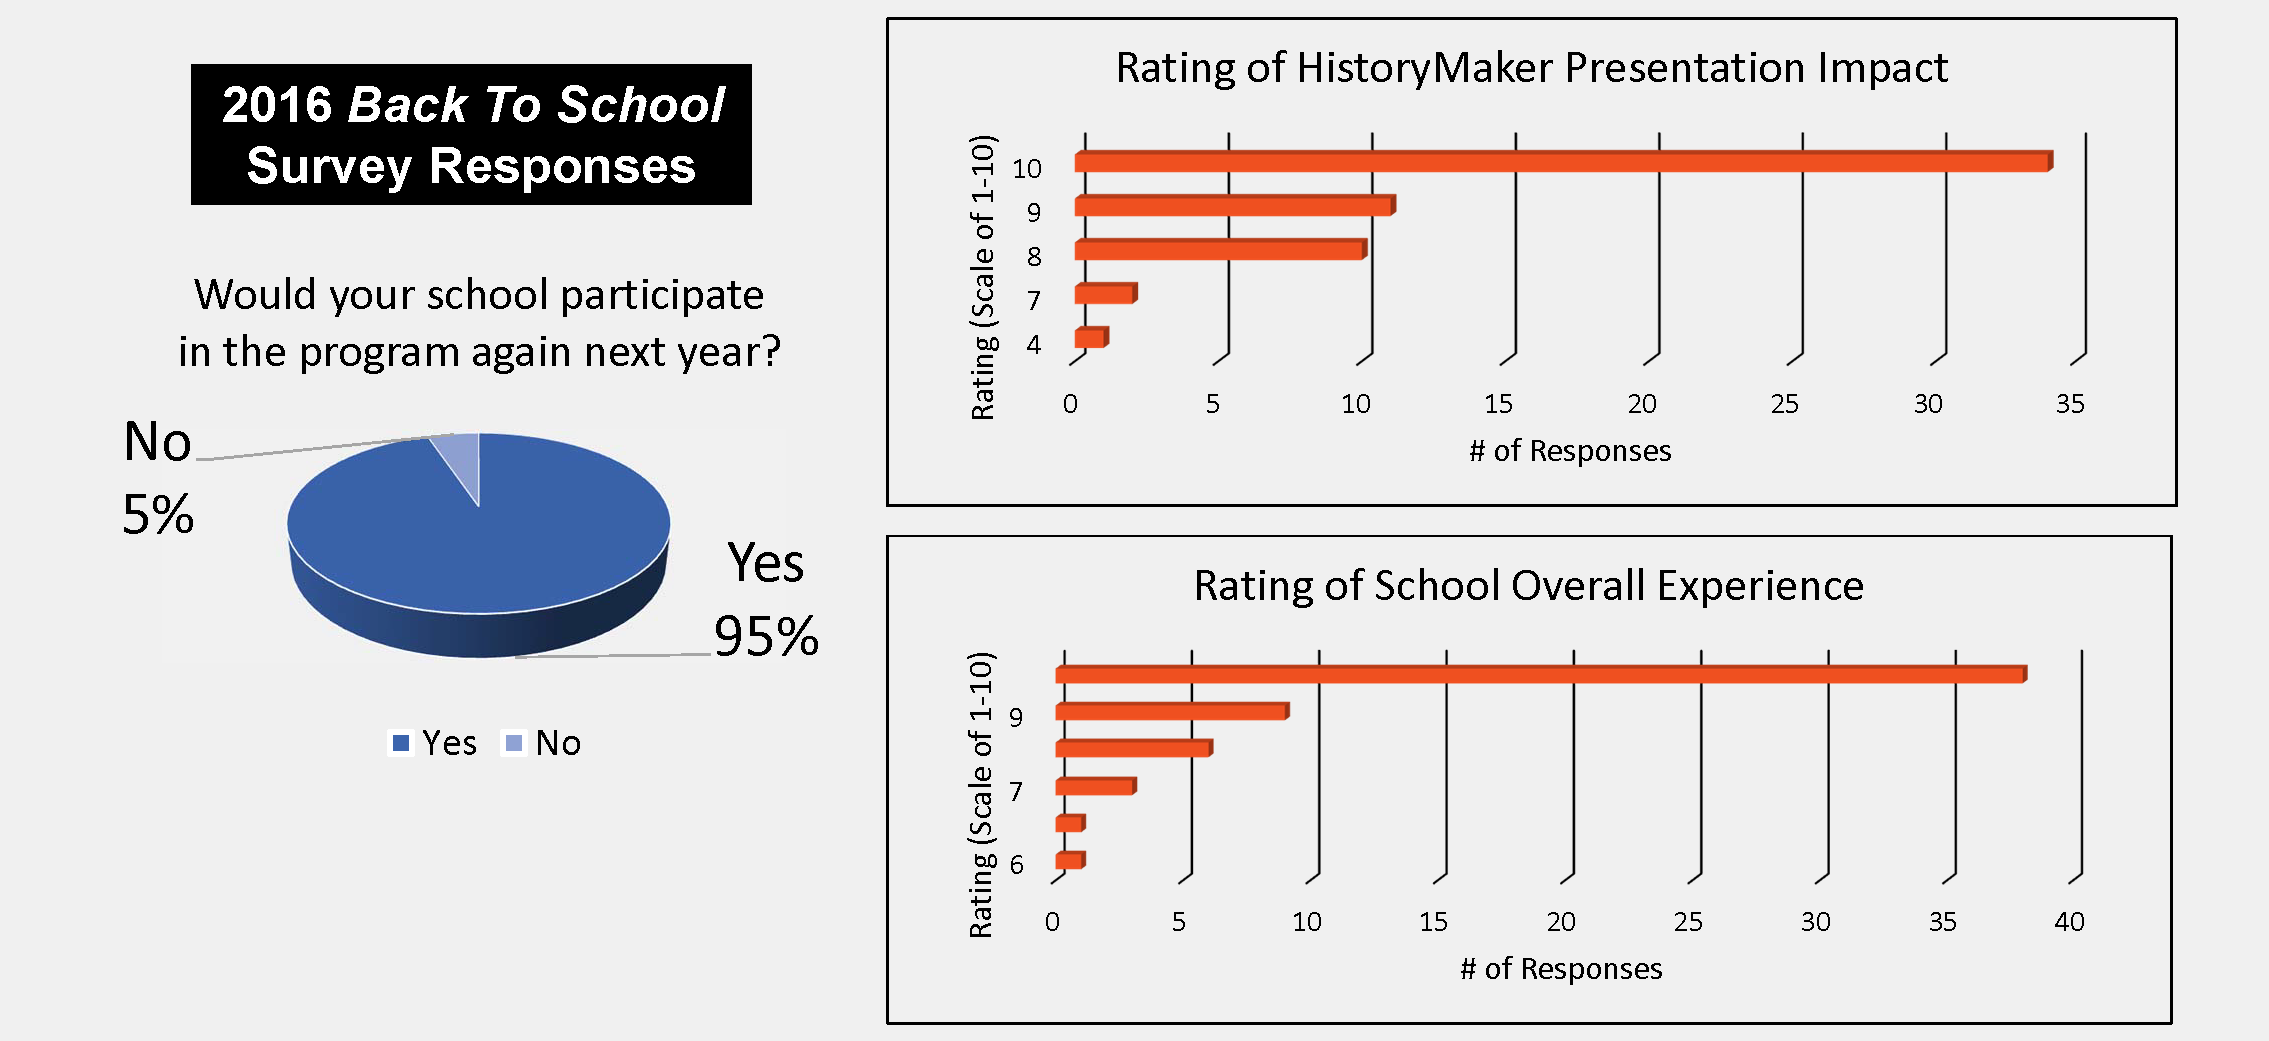 2016 Back To School Survey Responses